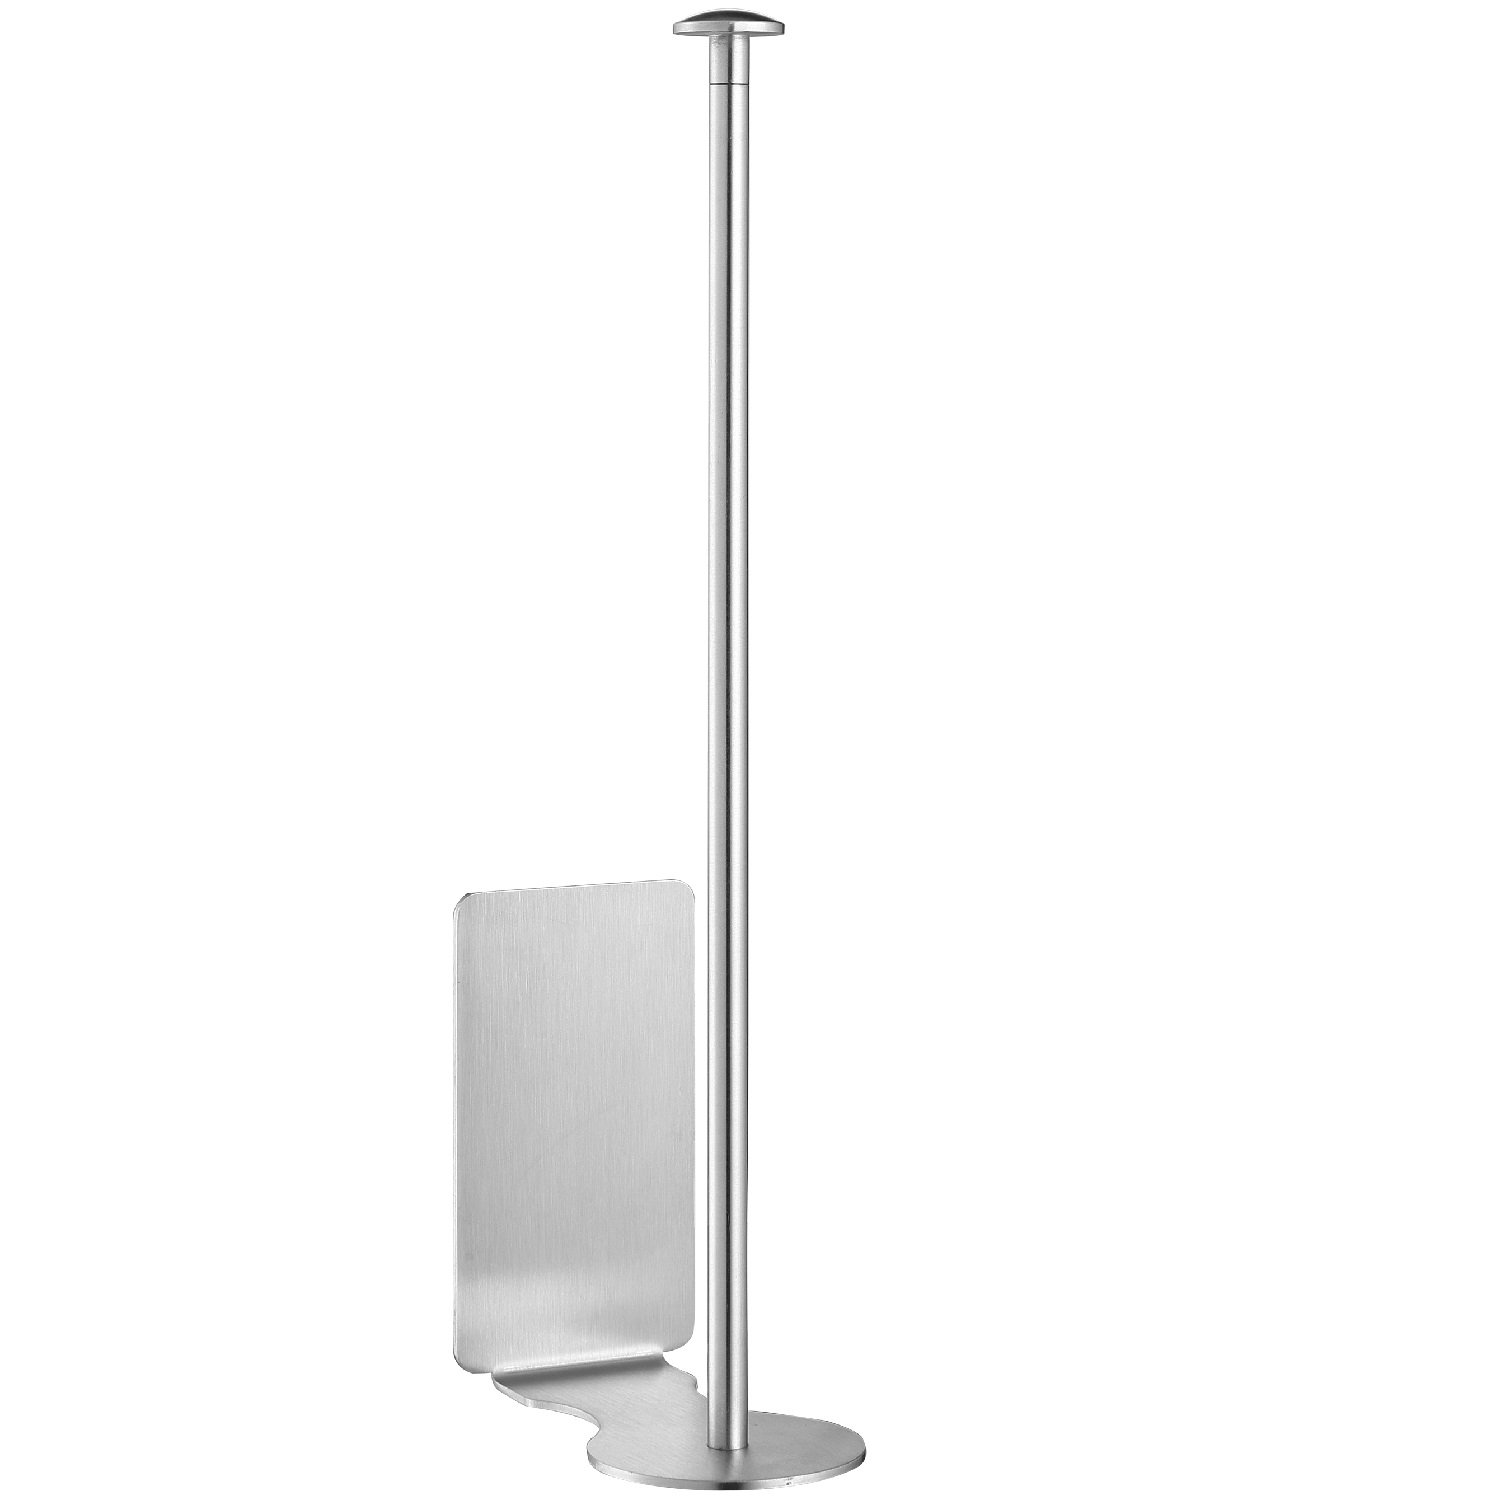 Adhesive Paper Towel Holder for Kitchen Bathroom - TeenGo Wall Mount Nail Free Vertical Paper Towel Holder Easy Install